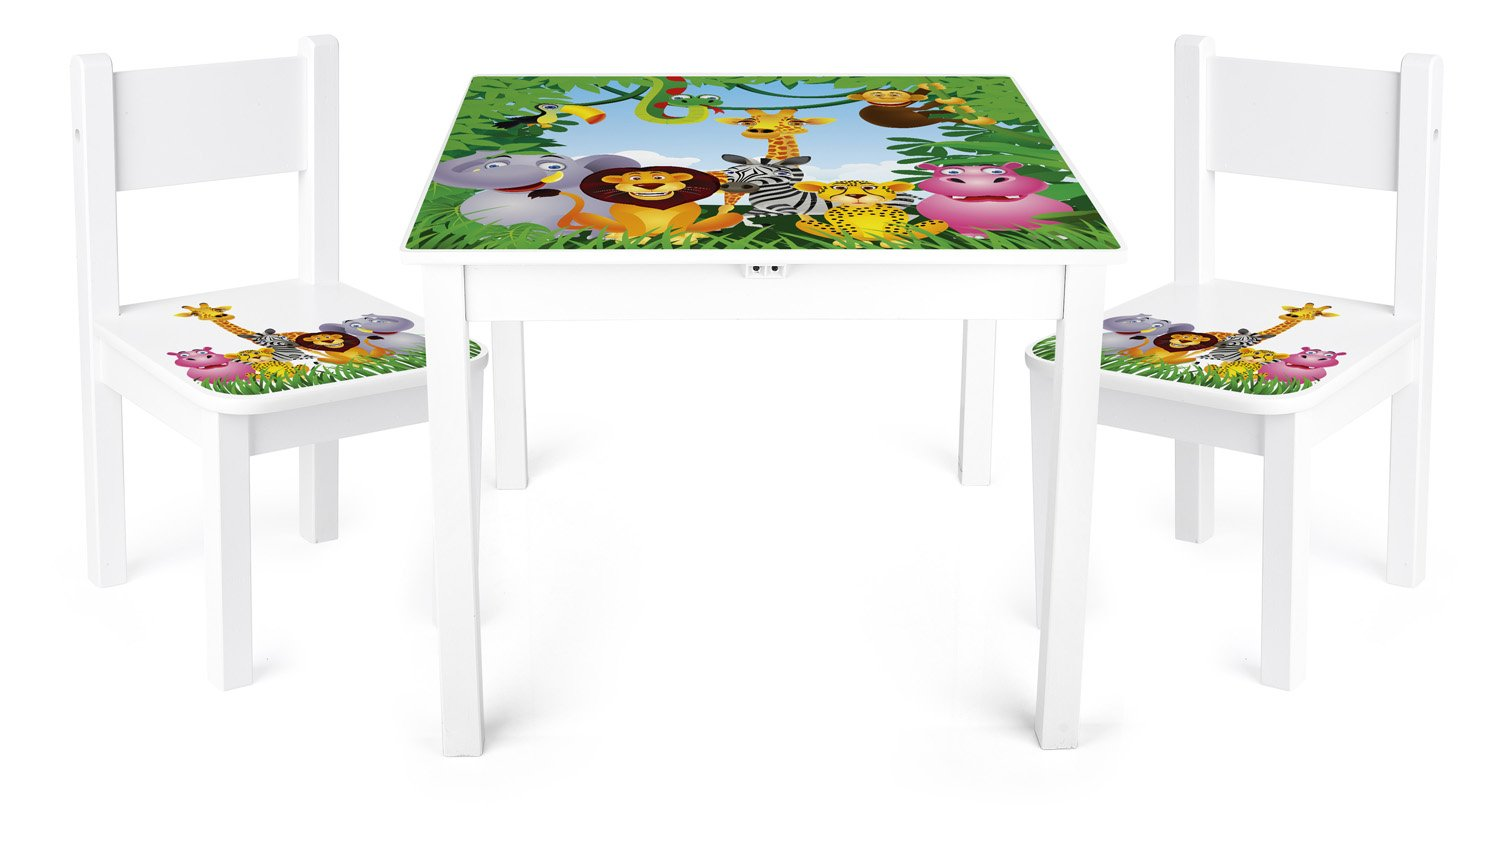 Children's Kids Toy Wooden Table and 2 Chairs Set by Leomark High Quality Motif: Jungle Animals